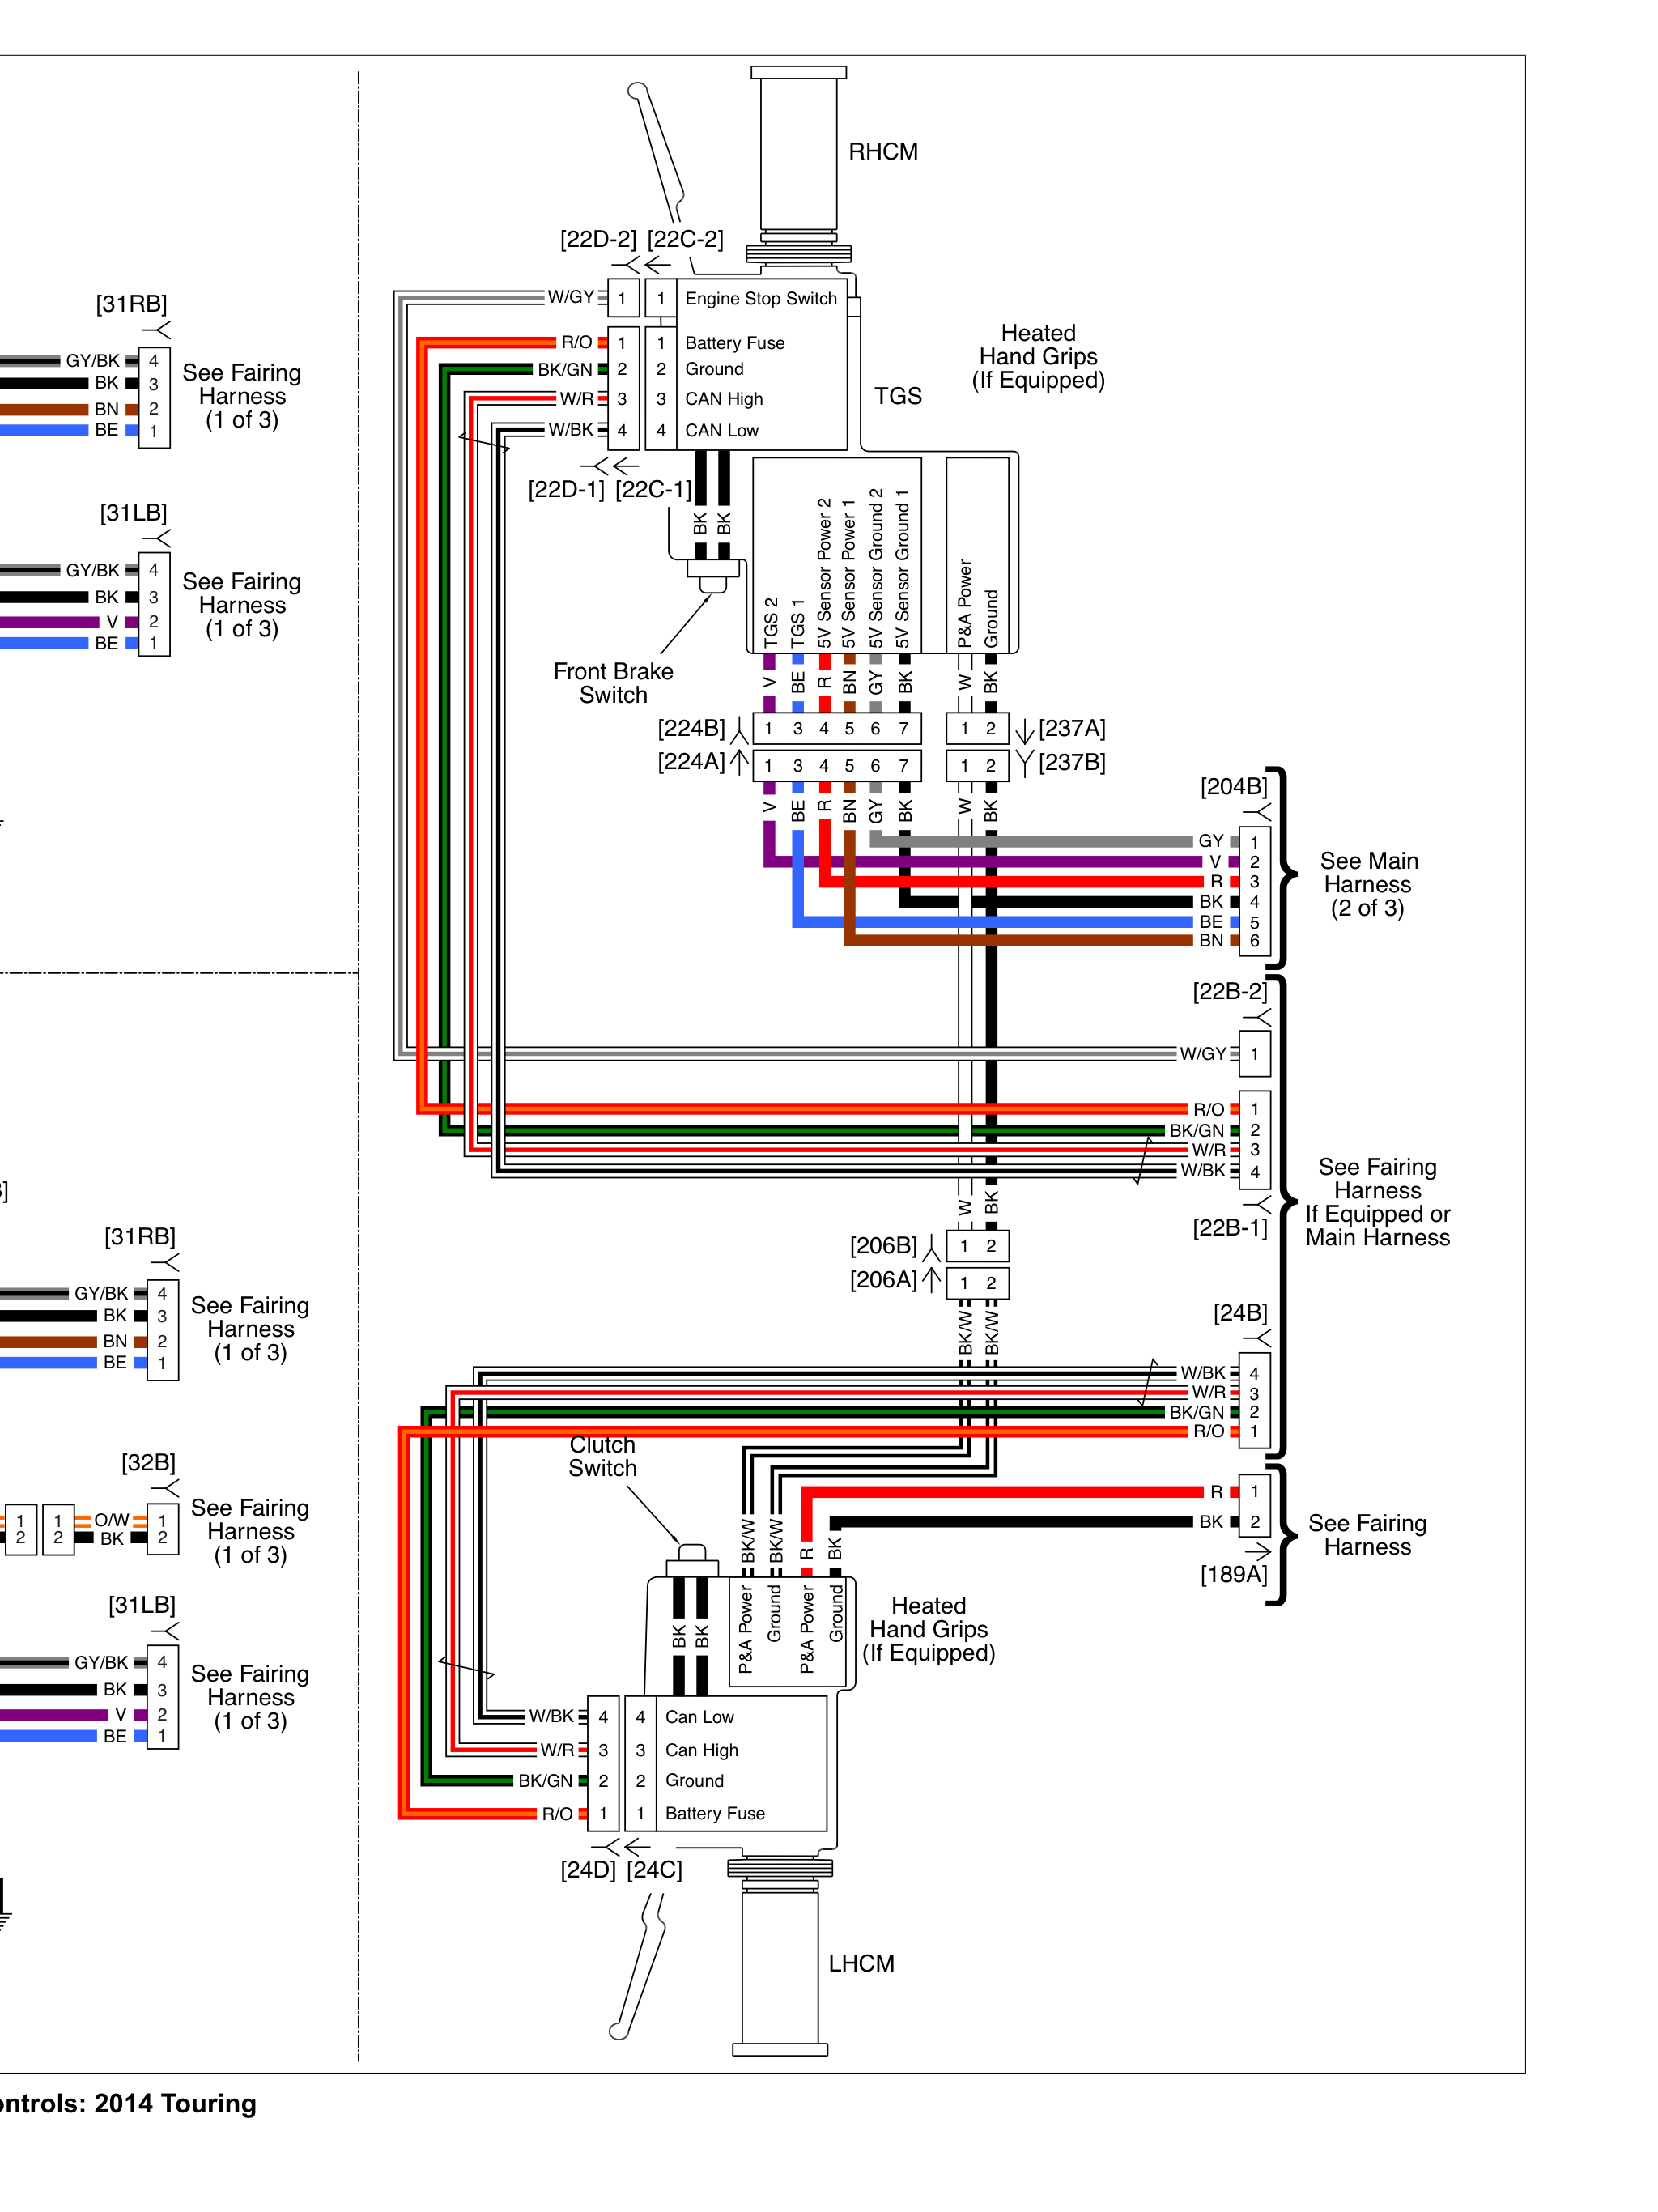 pin by jim olson on harley wires harley davidson forum handsharley sd sensor wiring diagram [ 2048 x 2732 Pixel ]